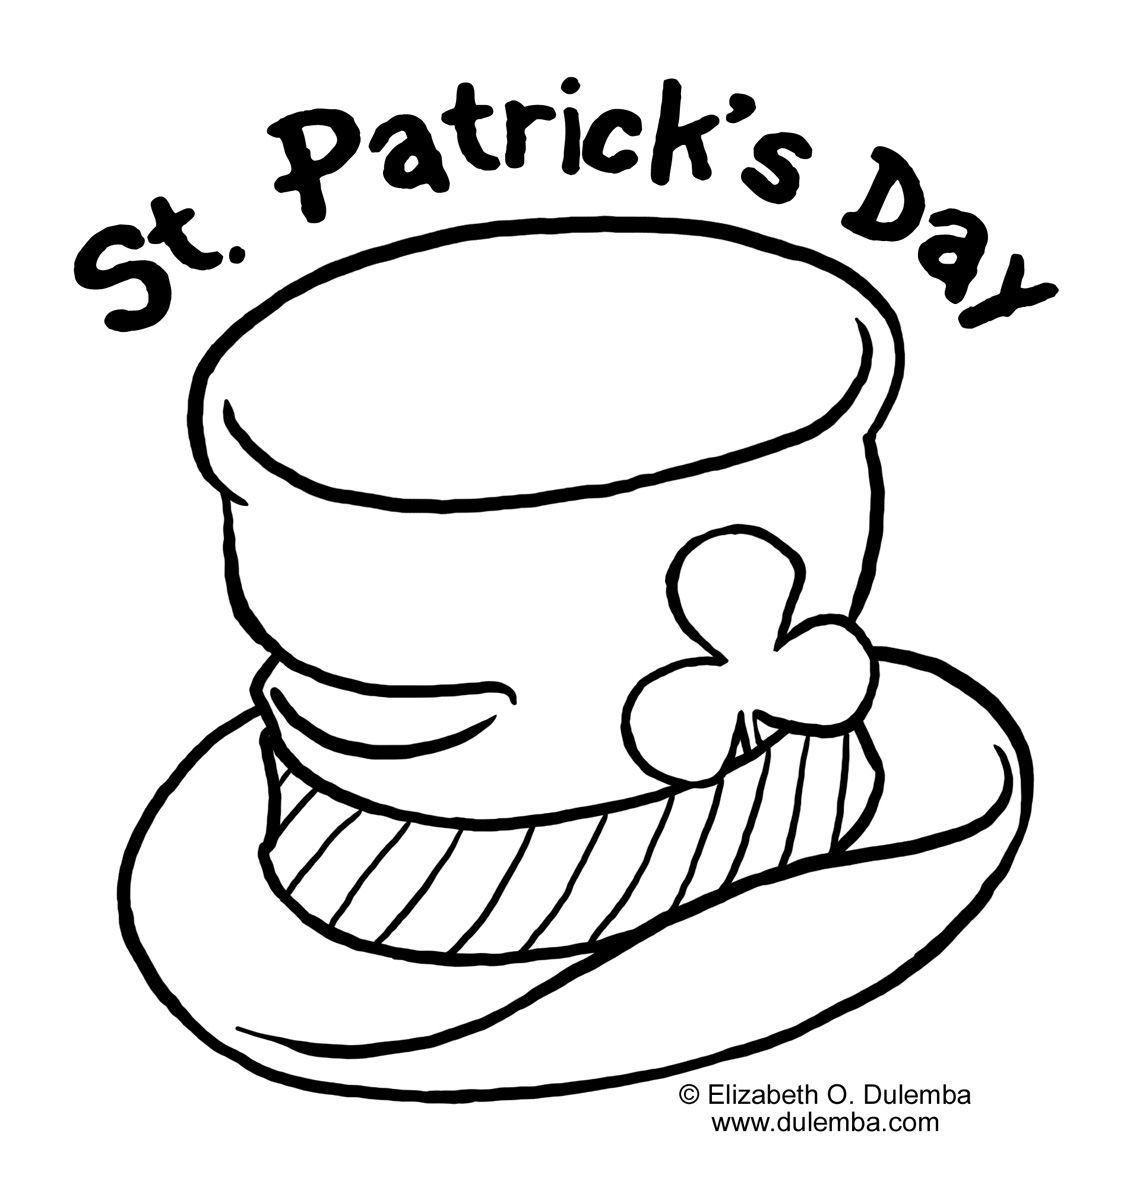 st patricks day coloring page - St Patricks Day Coloring Pages